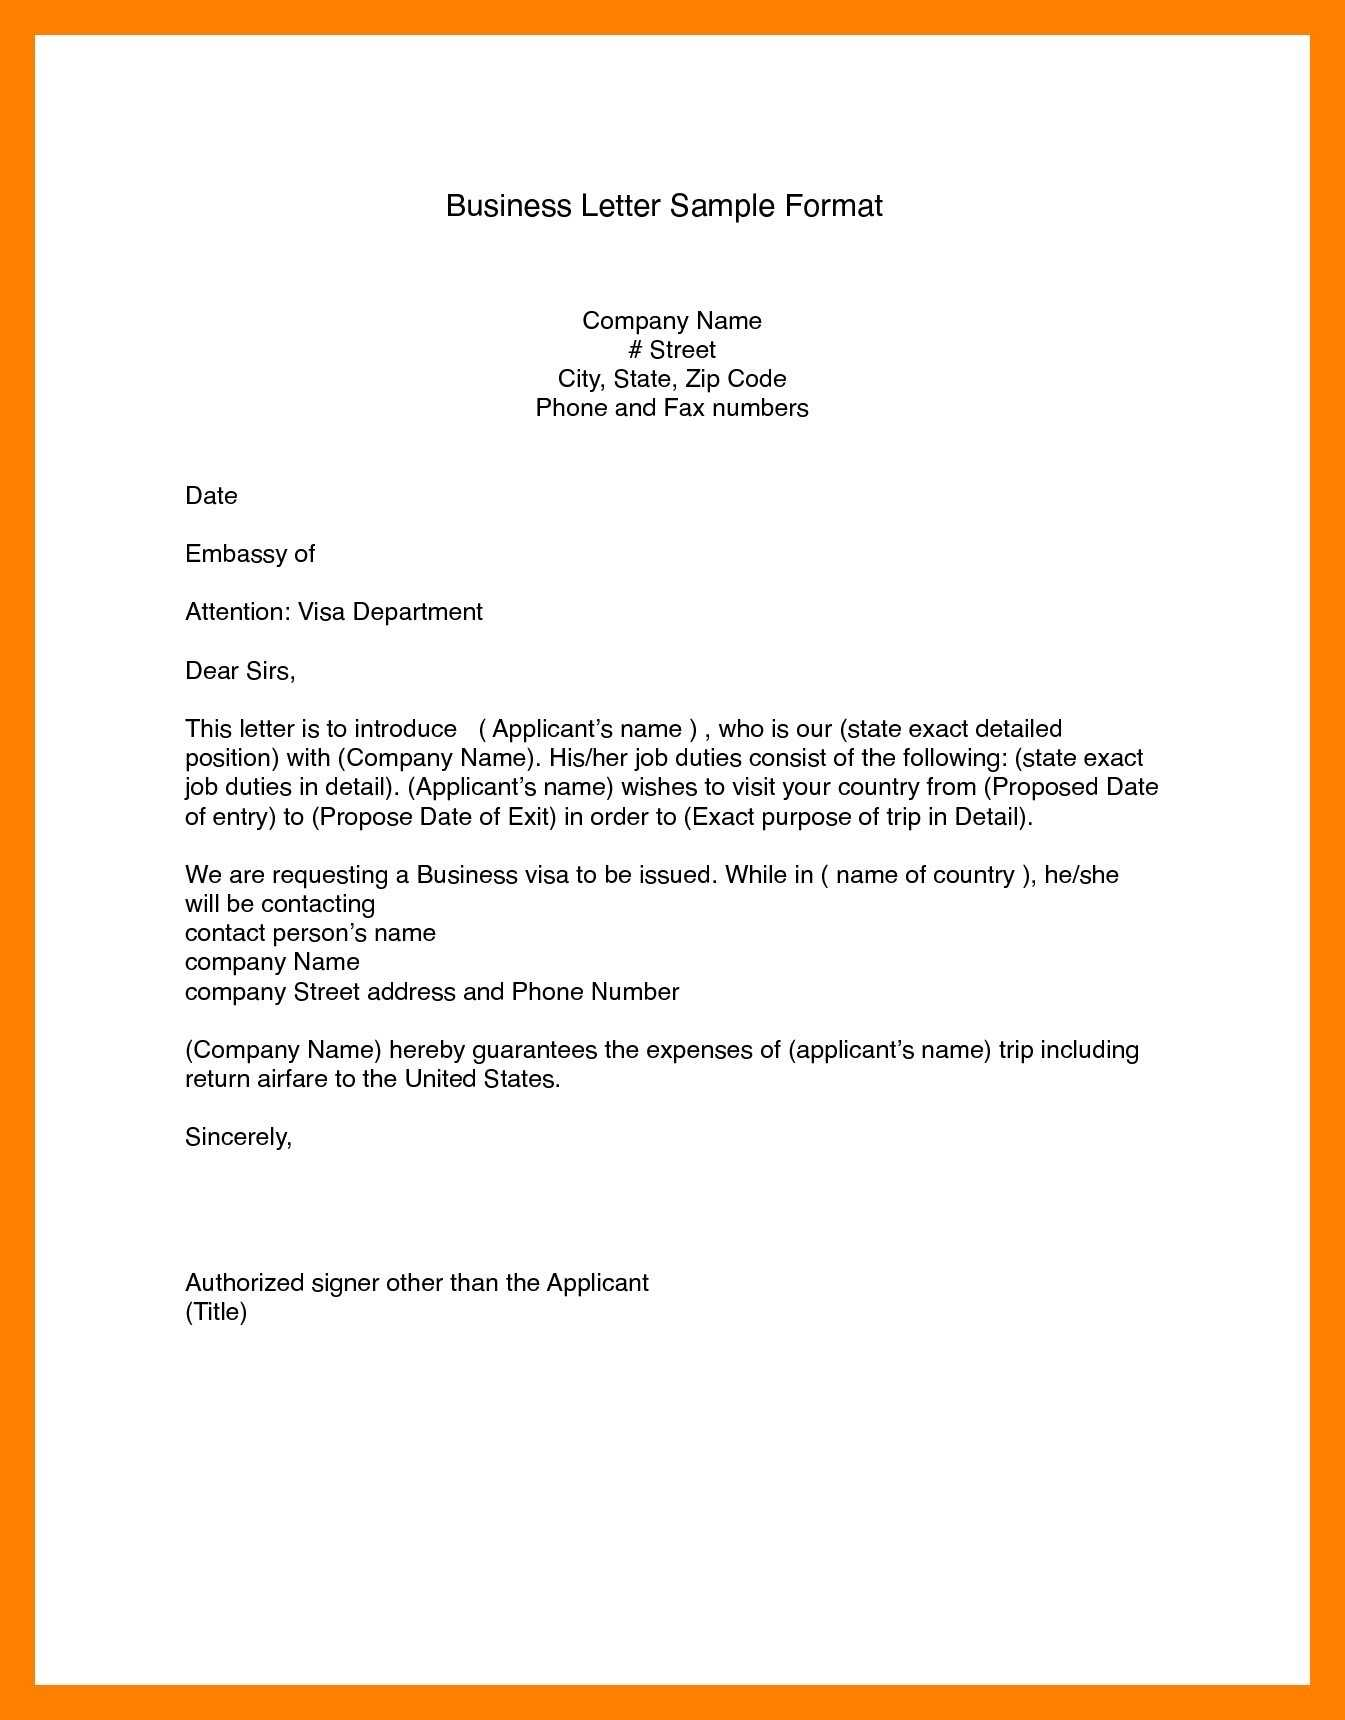 Business Letter Format Word (14)   Bank Statement pertaining to Modified Block Letter Template Word